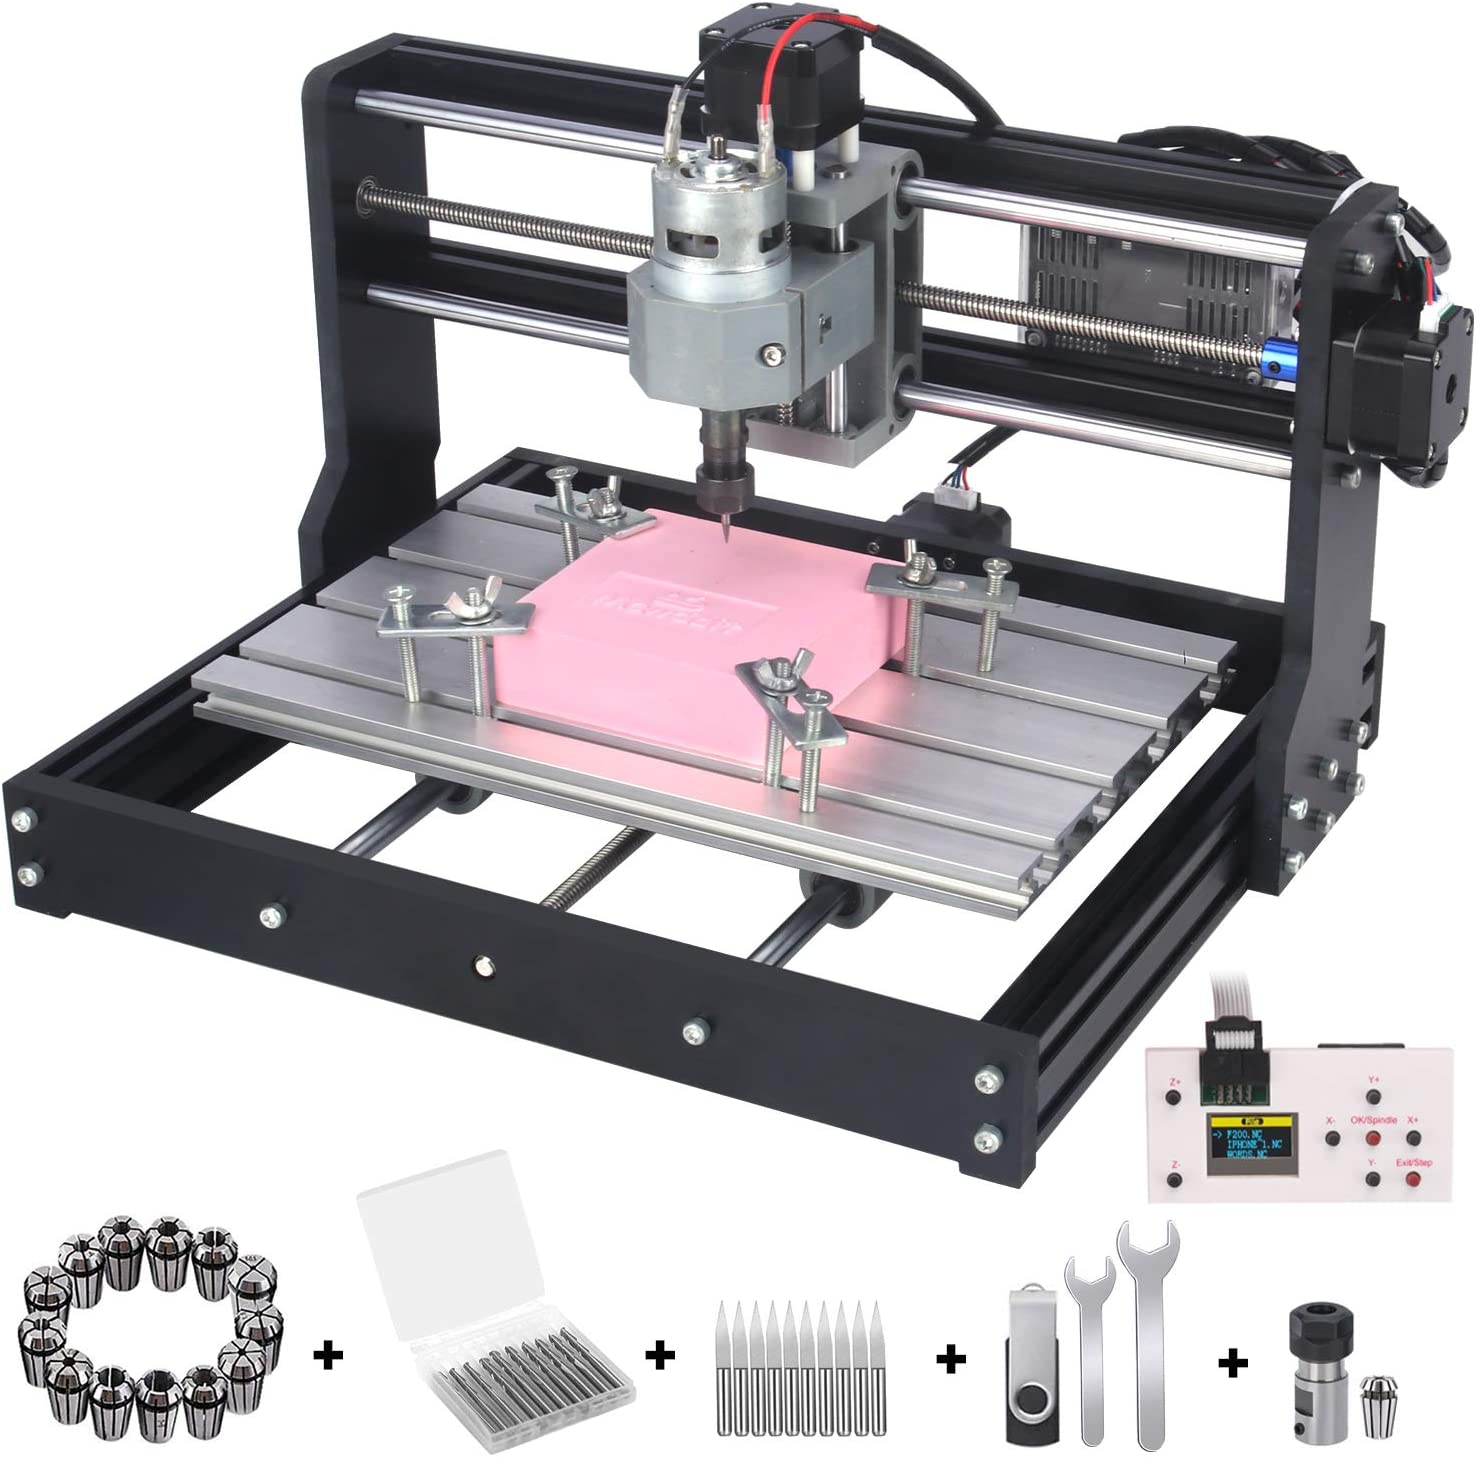 【US】 3 Axis DIY Mini 3018 GRBL Control CNC Laser Machine Milling Wood Router Kit